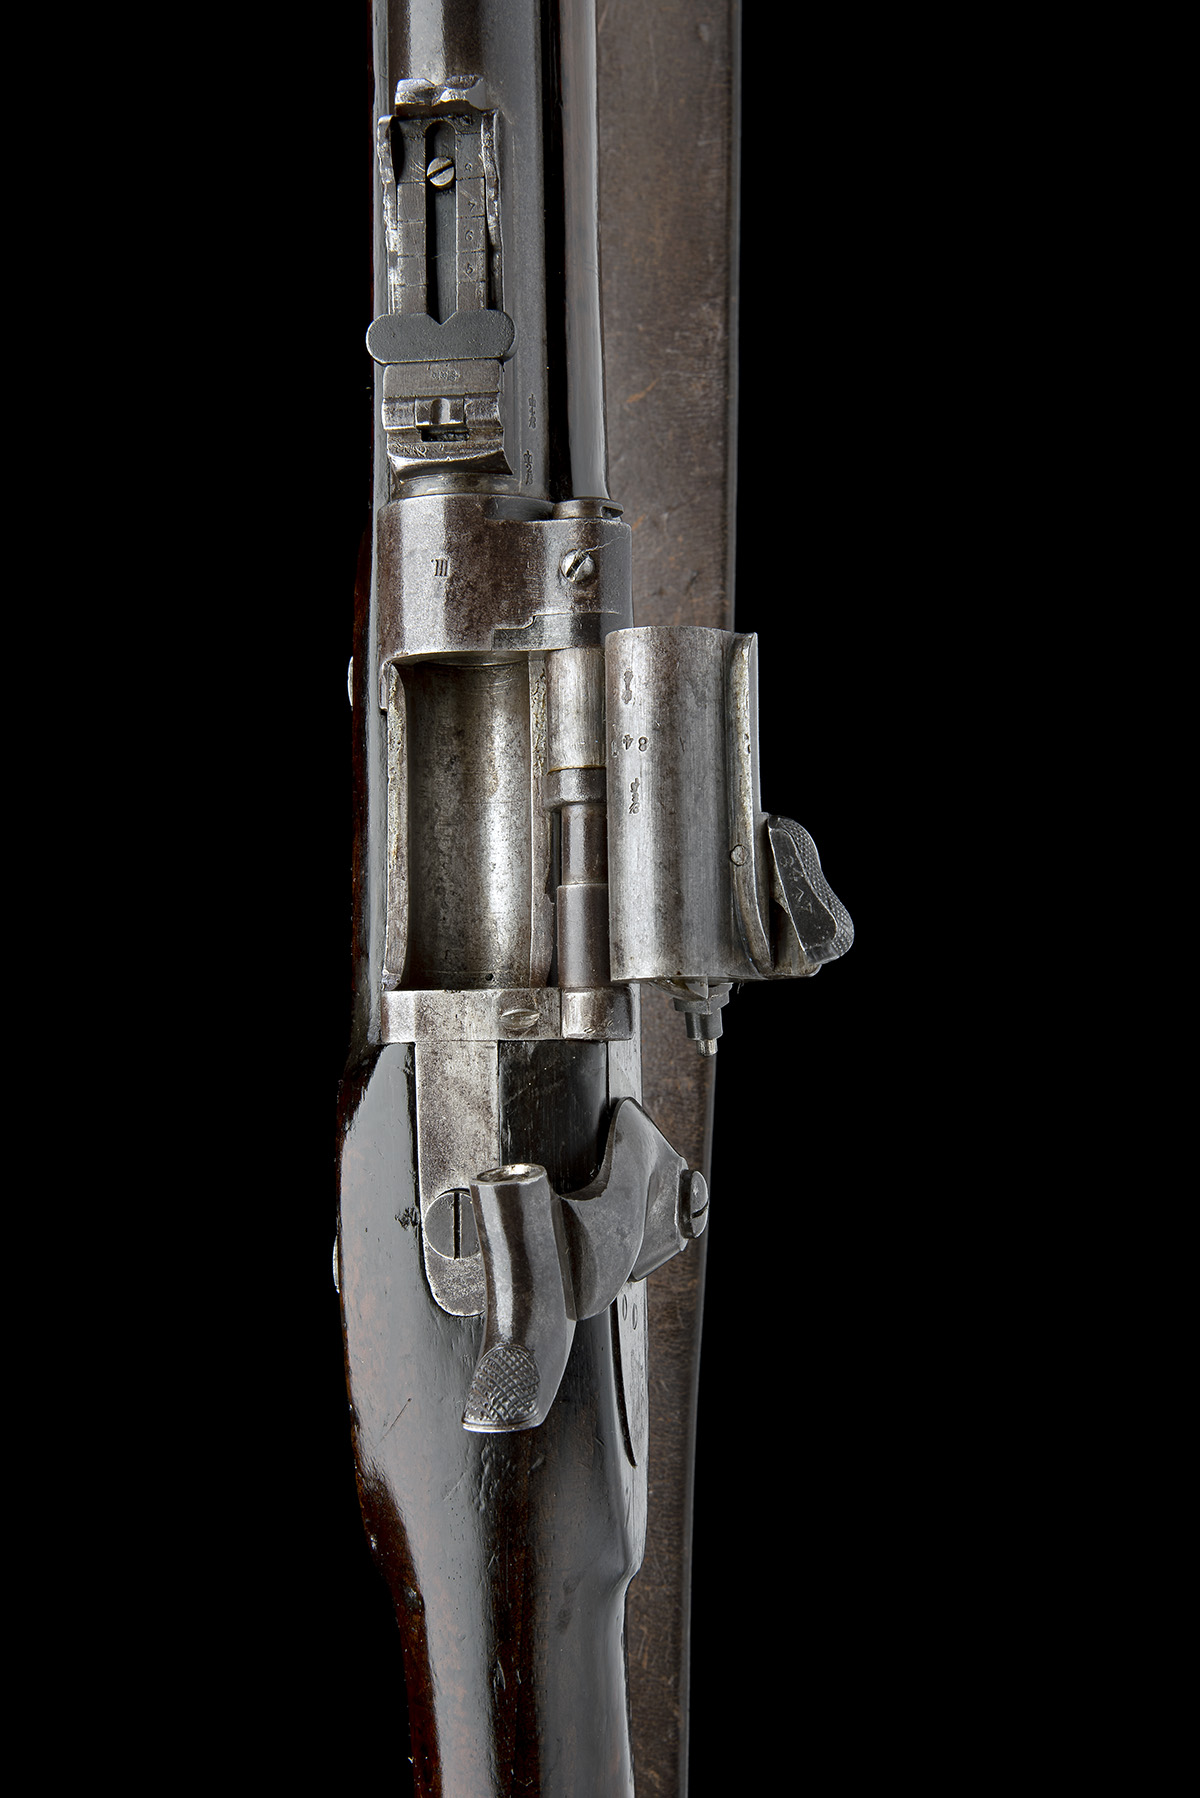 ENFIELD, ENGLAND A .577 (SNIDER) BREECH-LOADING SERVICE-RIFLE, MODEL 'MKIII TWO-BAND', serial no. - Image 7 of 10